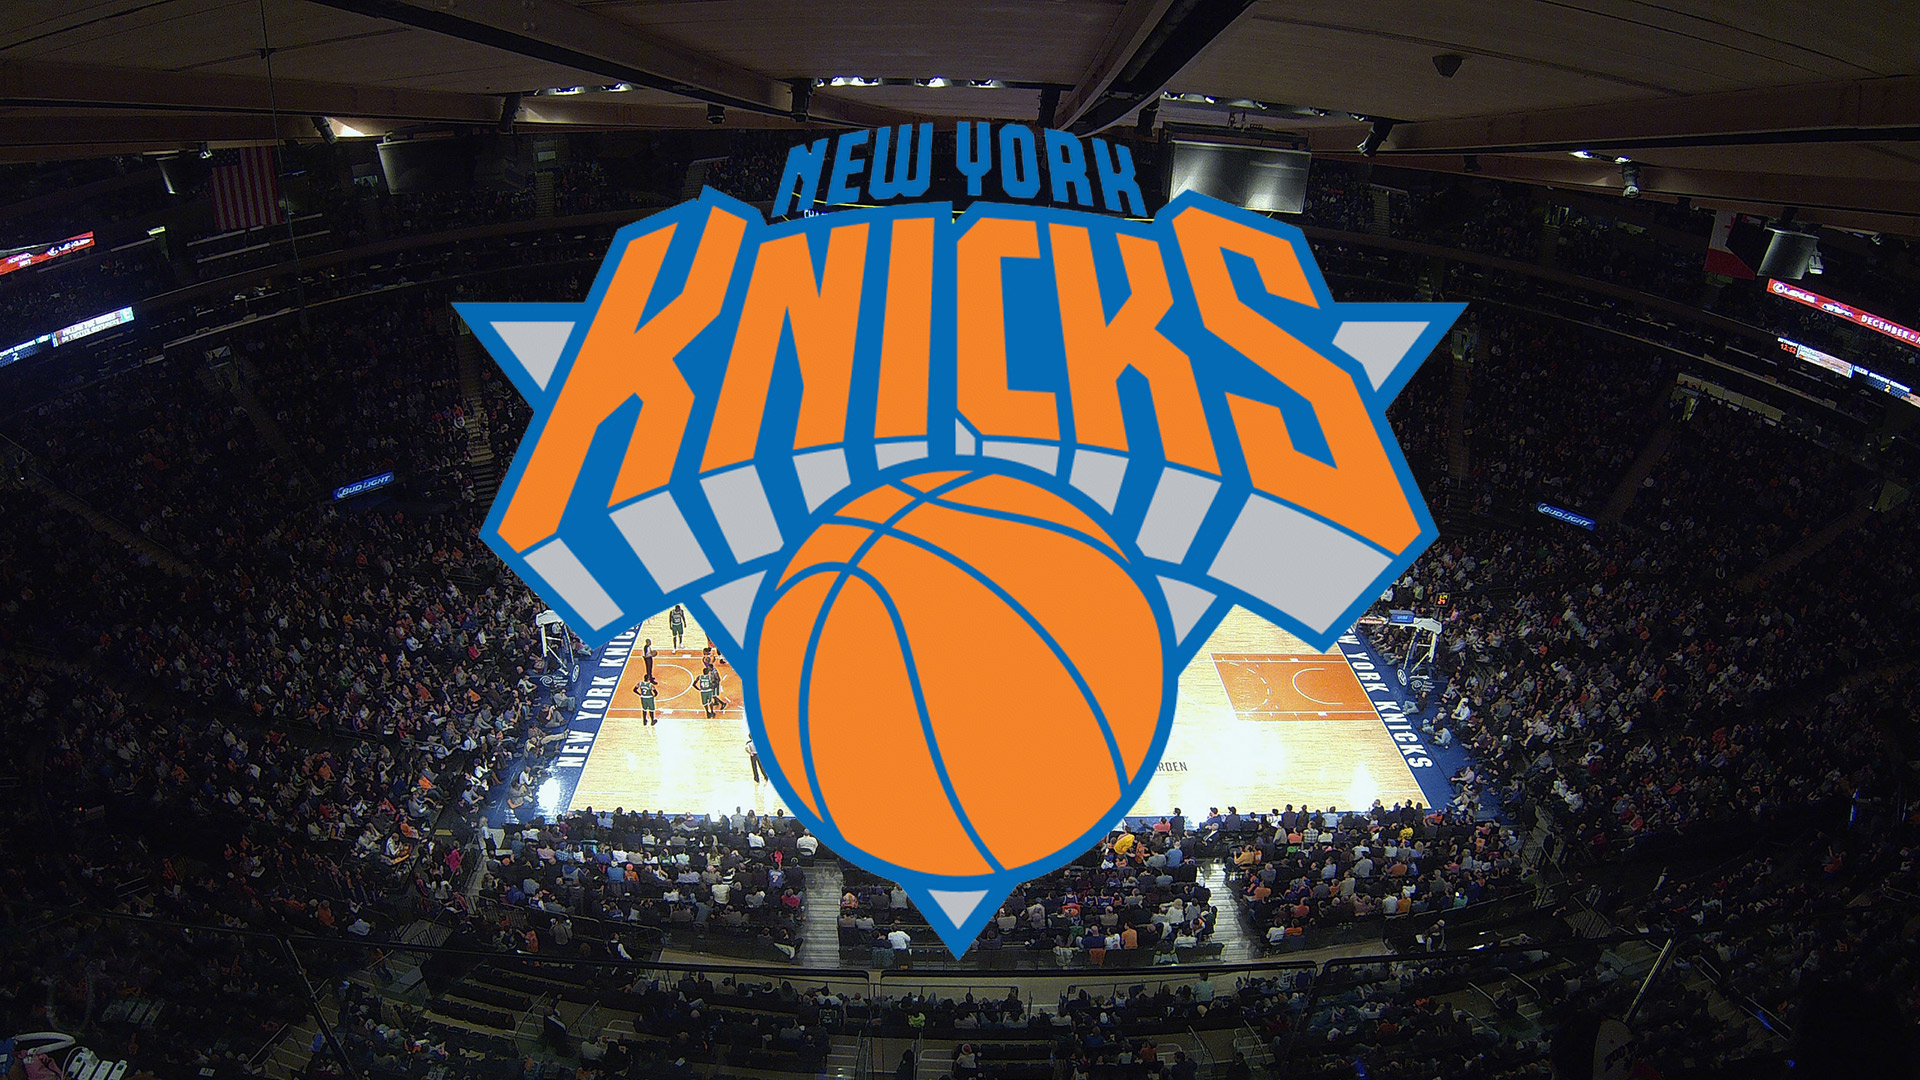 New york knicks wallpapers high resolution and quality download Madison square garden basketball